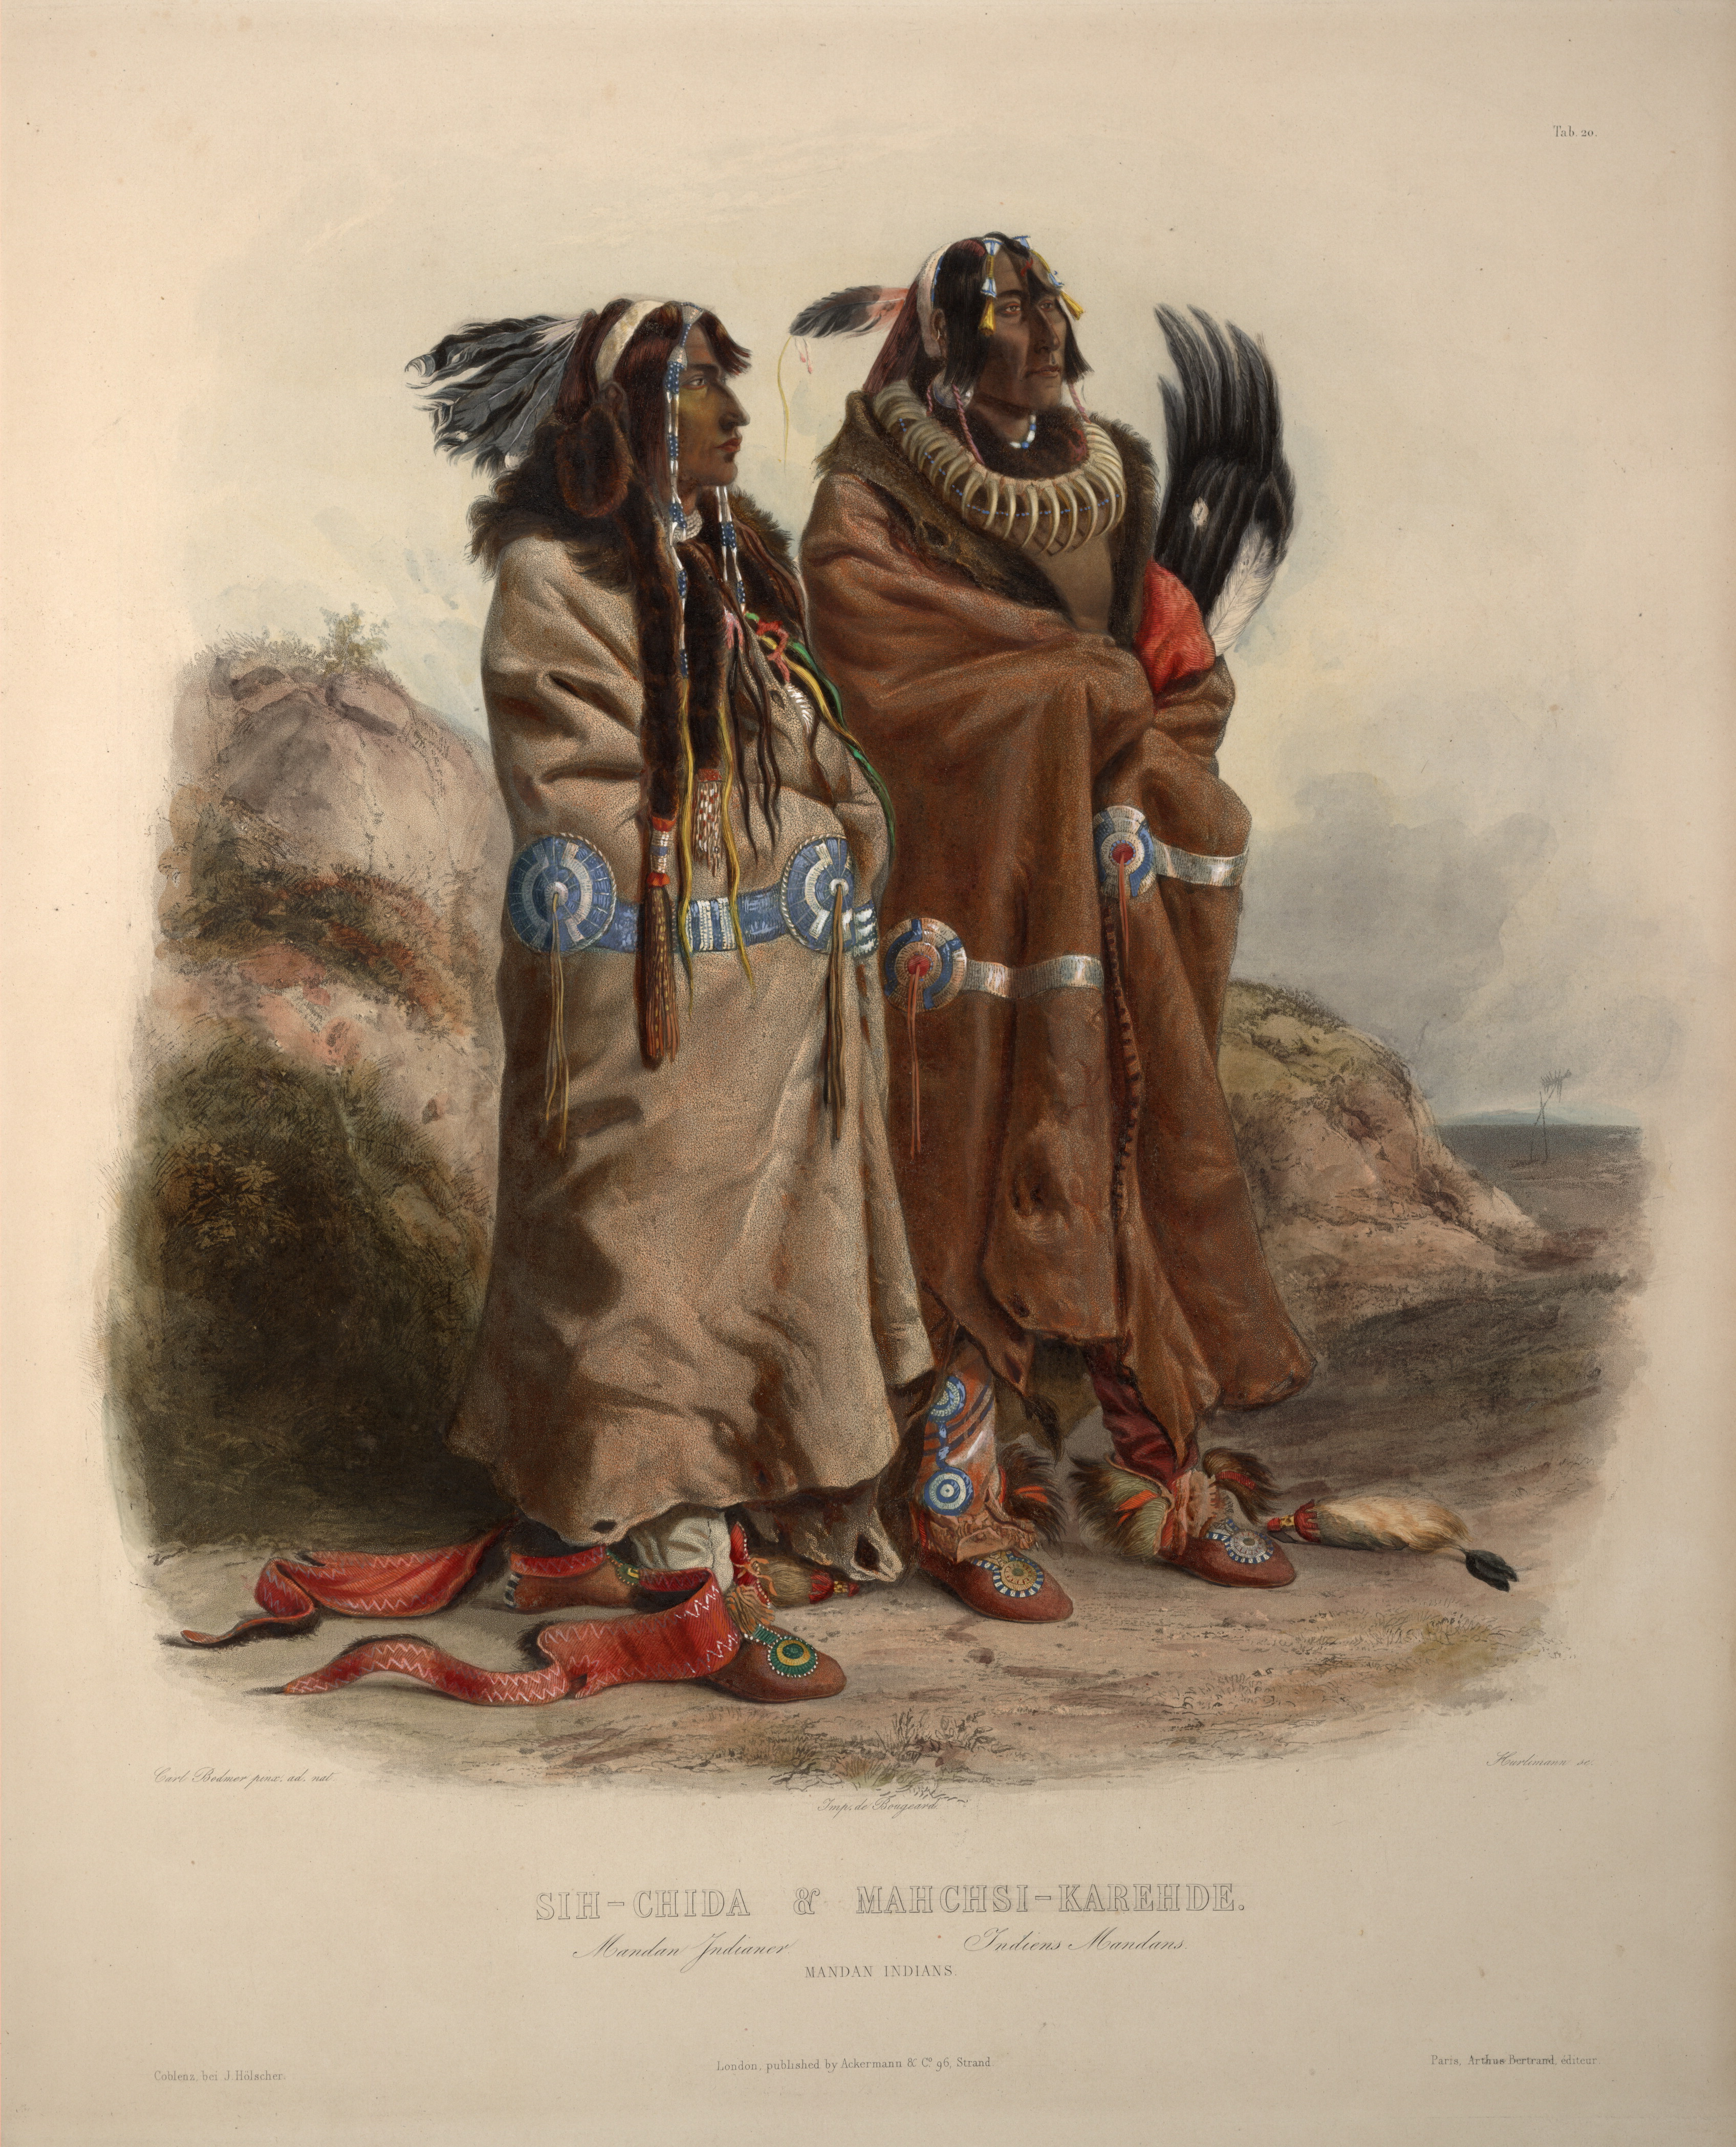 facts about the mandan tribe Interesting facts the mandan, hidatsa, and arikara tribes are located in present day north and south dakota lewis and clark spent the winter of 1804 at fort mandan.